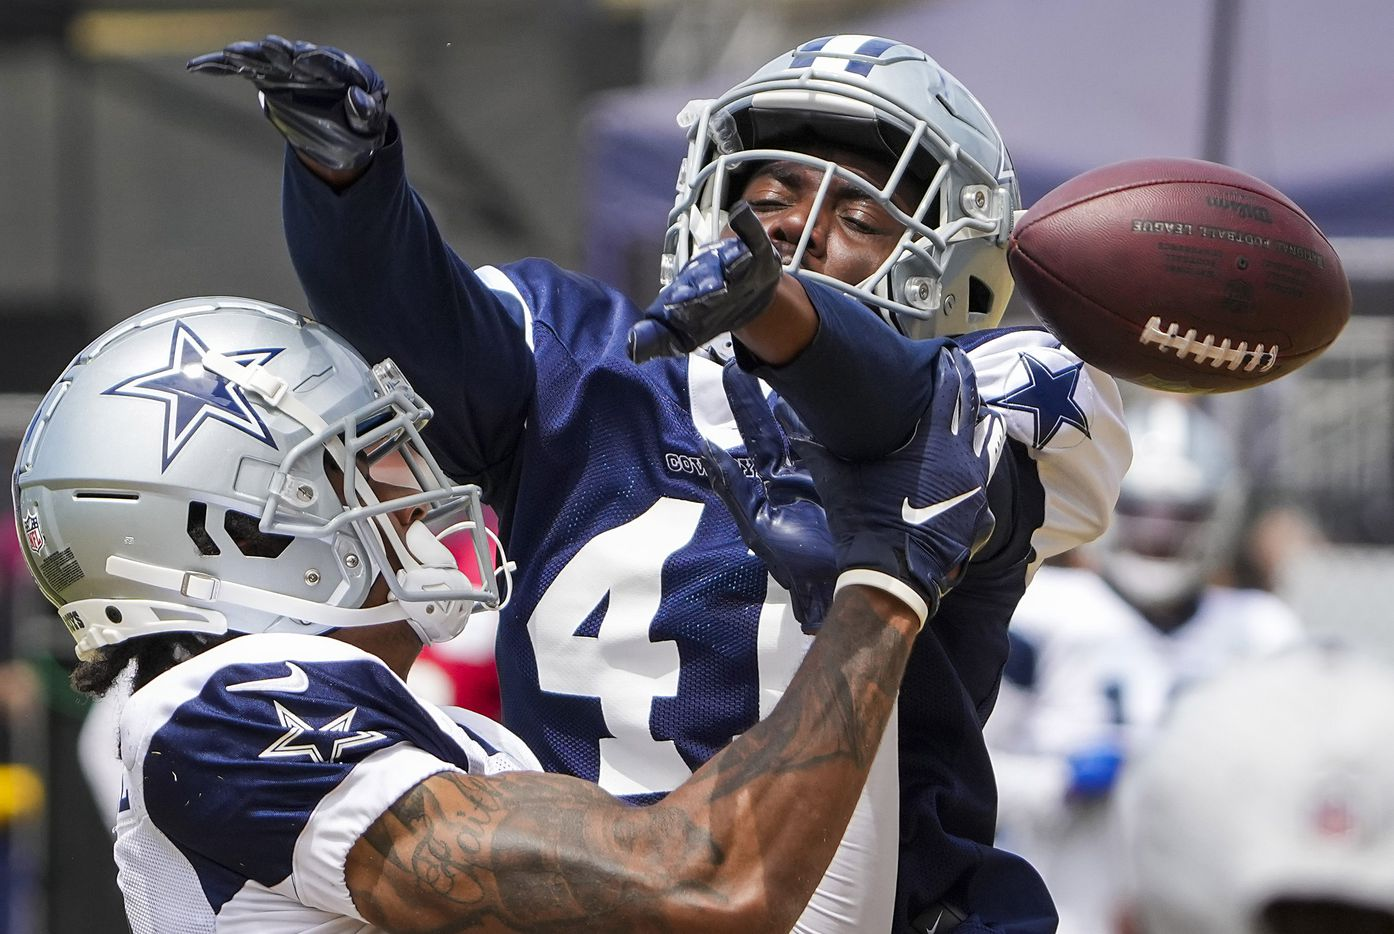 Dallas Cowboys cornerback Reggie Robinson II (41) breaks up a pass intended for wide receiver Osirus Mitchell (14) during a practice at training camp on Wednesday, Aug. 11, 2021, in Oxnard, Calif.